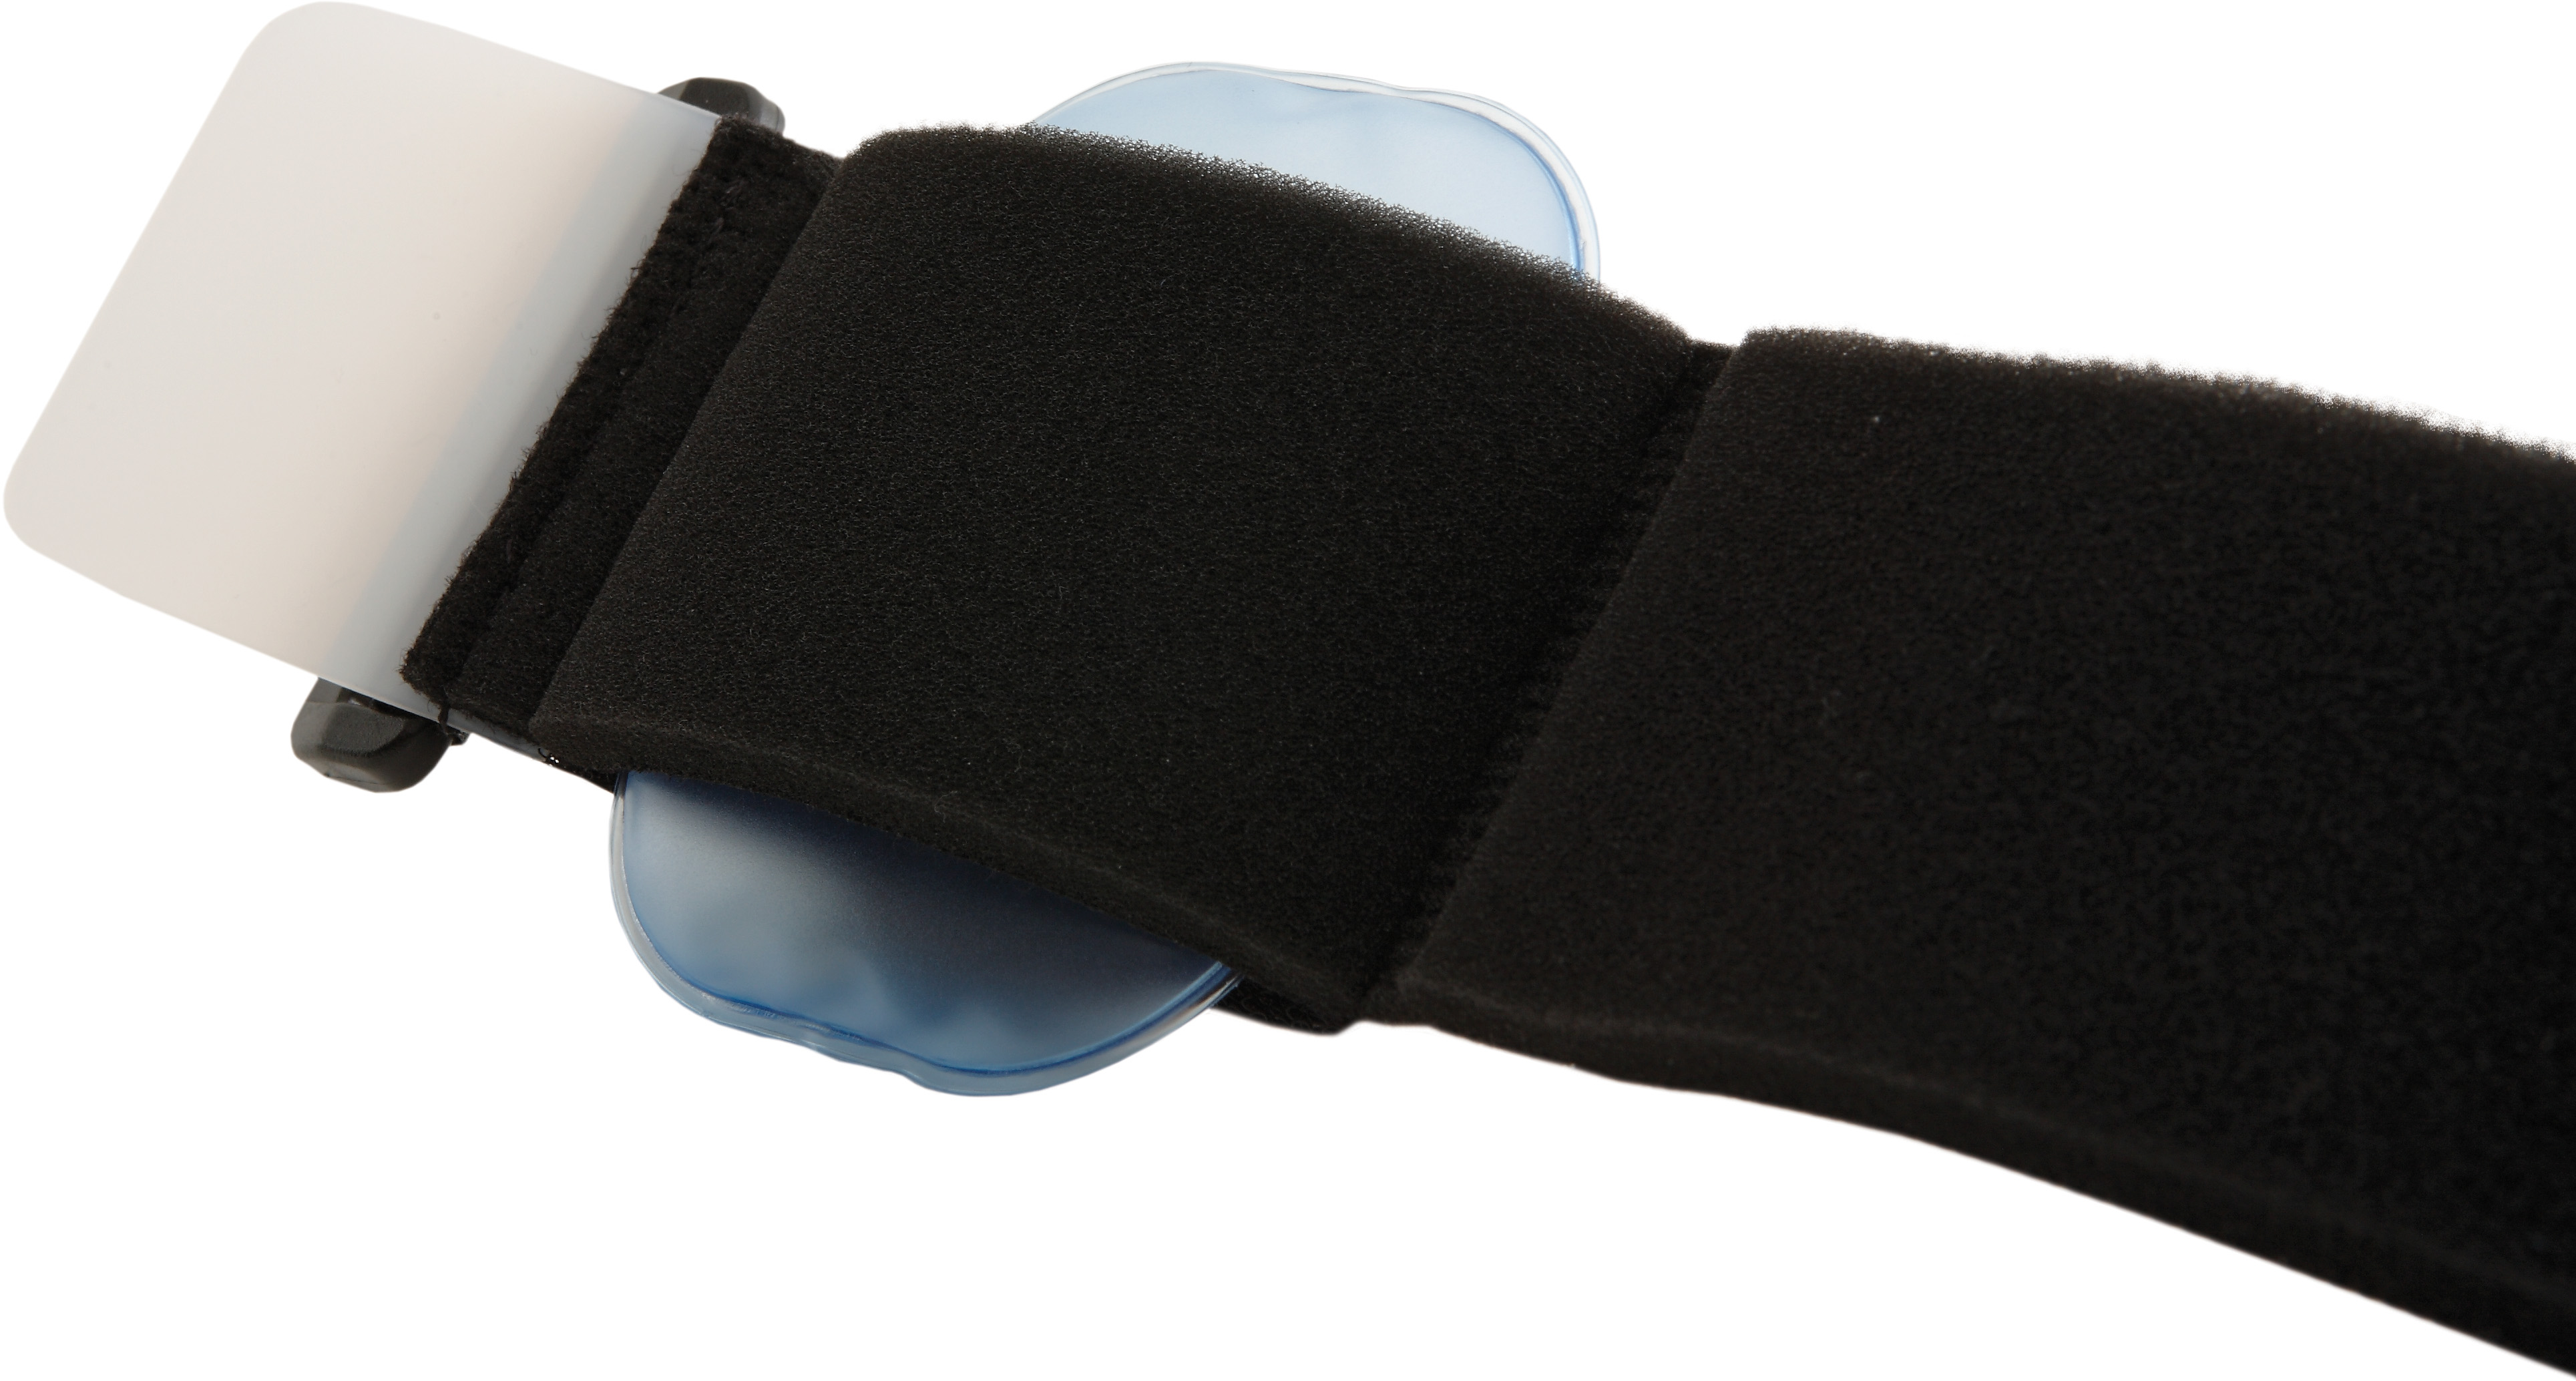 airform tennis elbow pad2.jpg